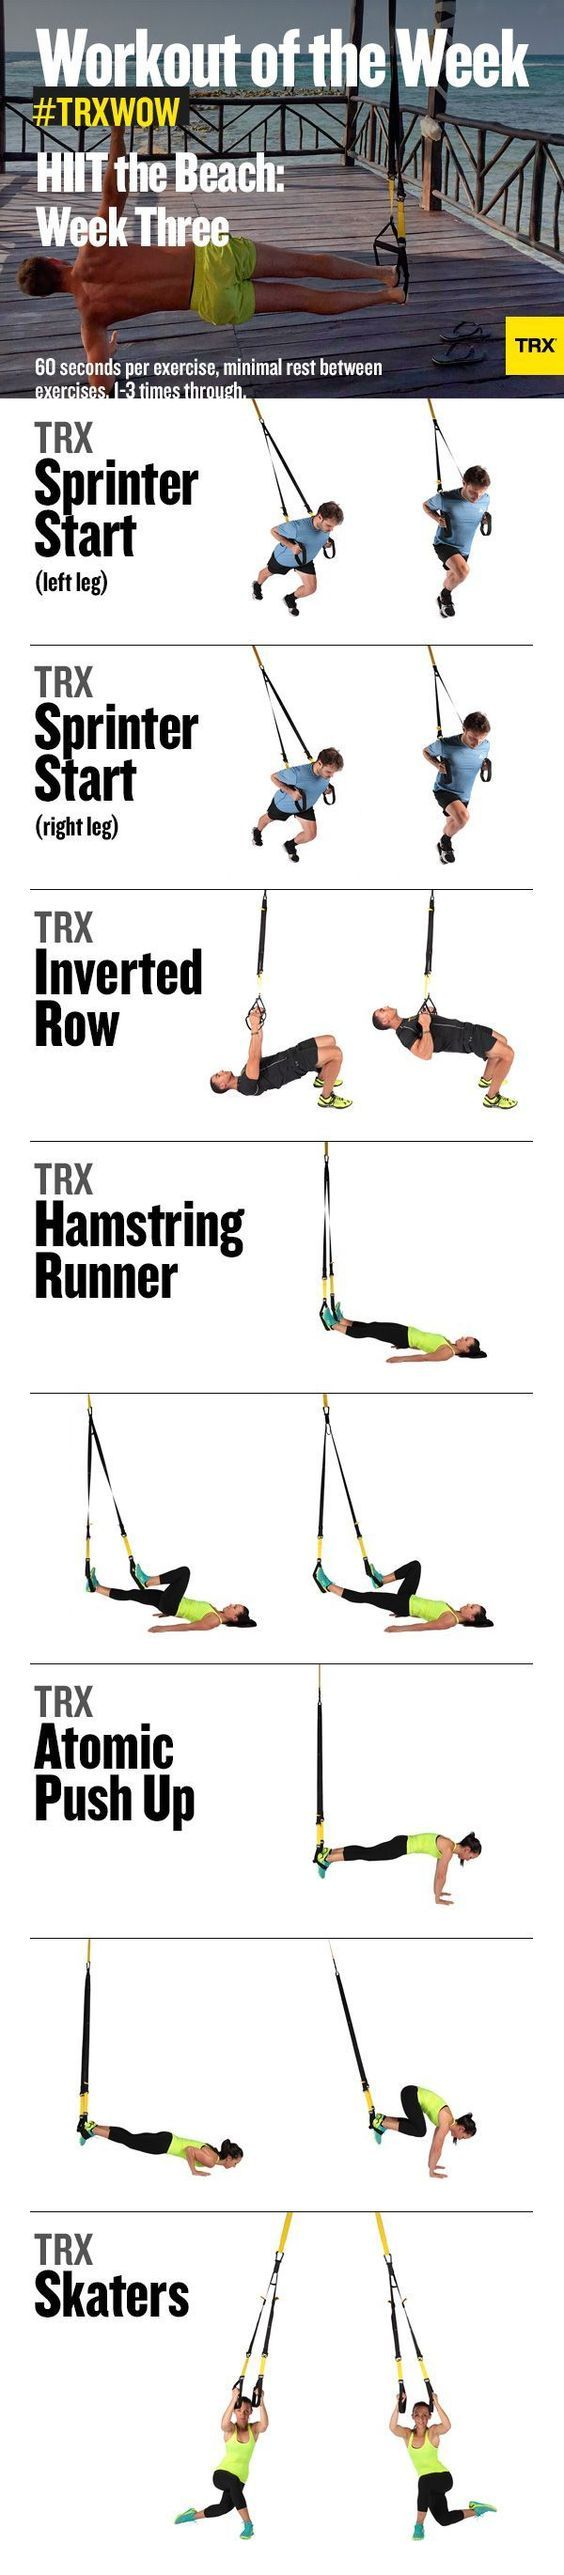 TRX Workout of the Week: Crank up the heat on your summer body with this short, sweet and sizzling-hot HIIT workout you can do anywhere! -TRXWOW -TRX